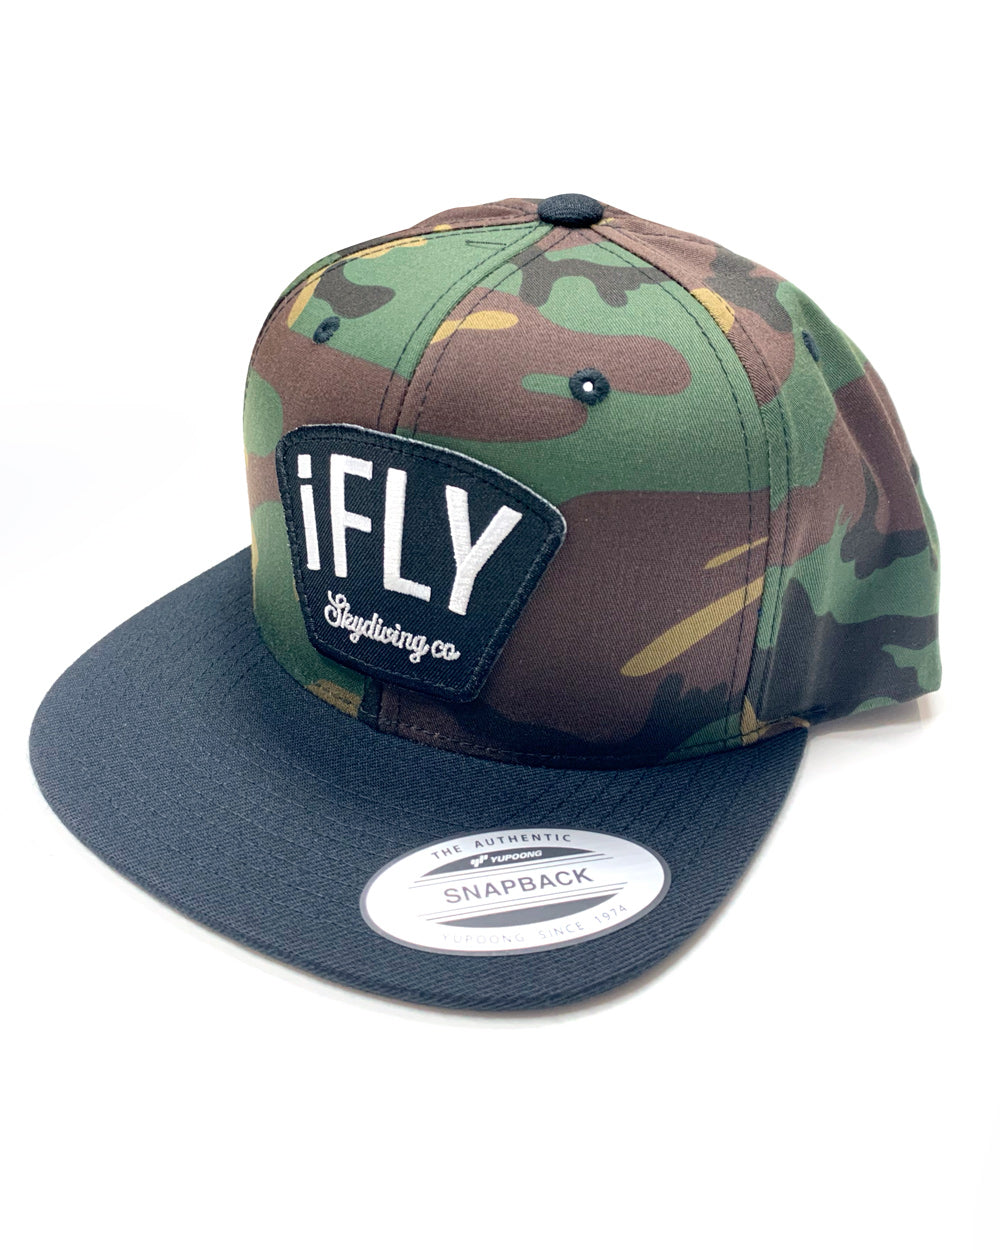 iFLY SKYDIVING CO -HAT_CAMO